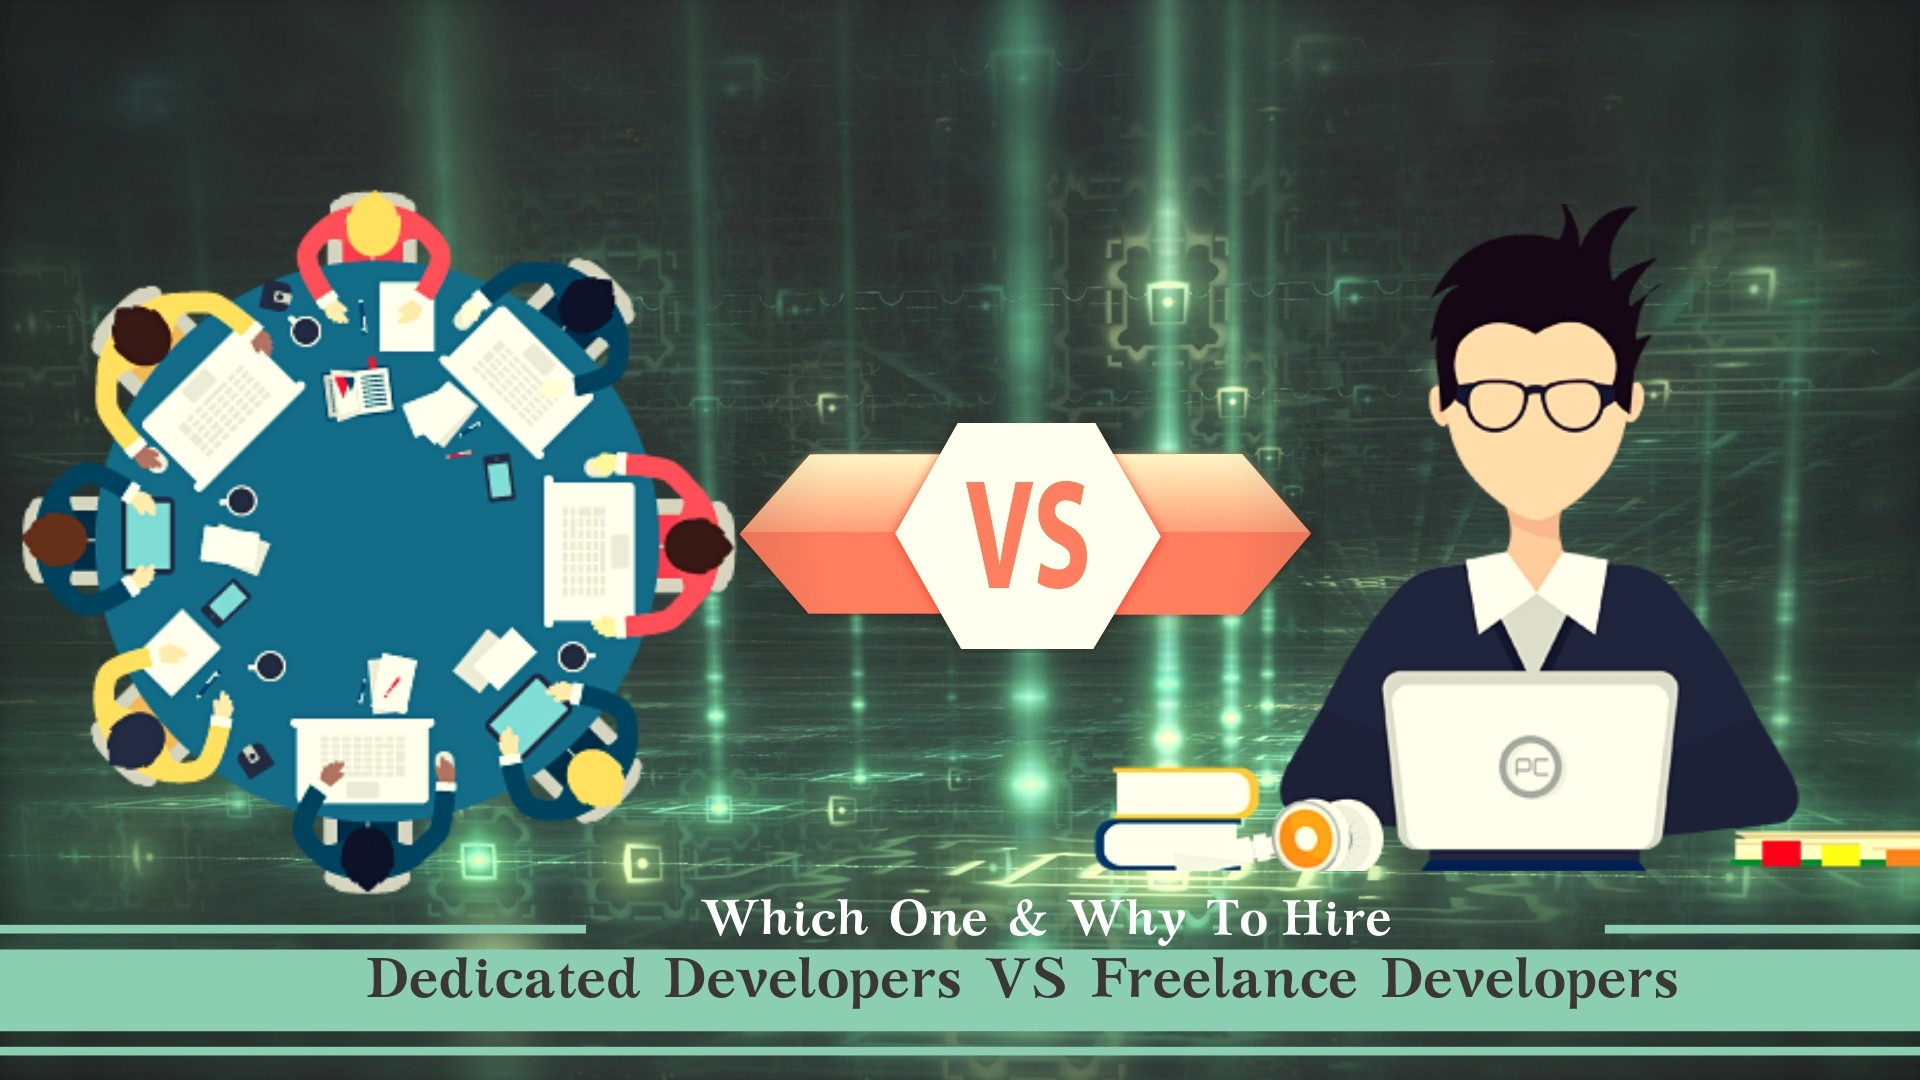 /which-one-why-to-hire-dedicated-developers-vs-freelance-developers-4dfd92a7dc95 feature image